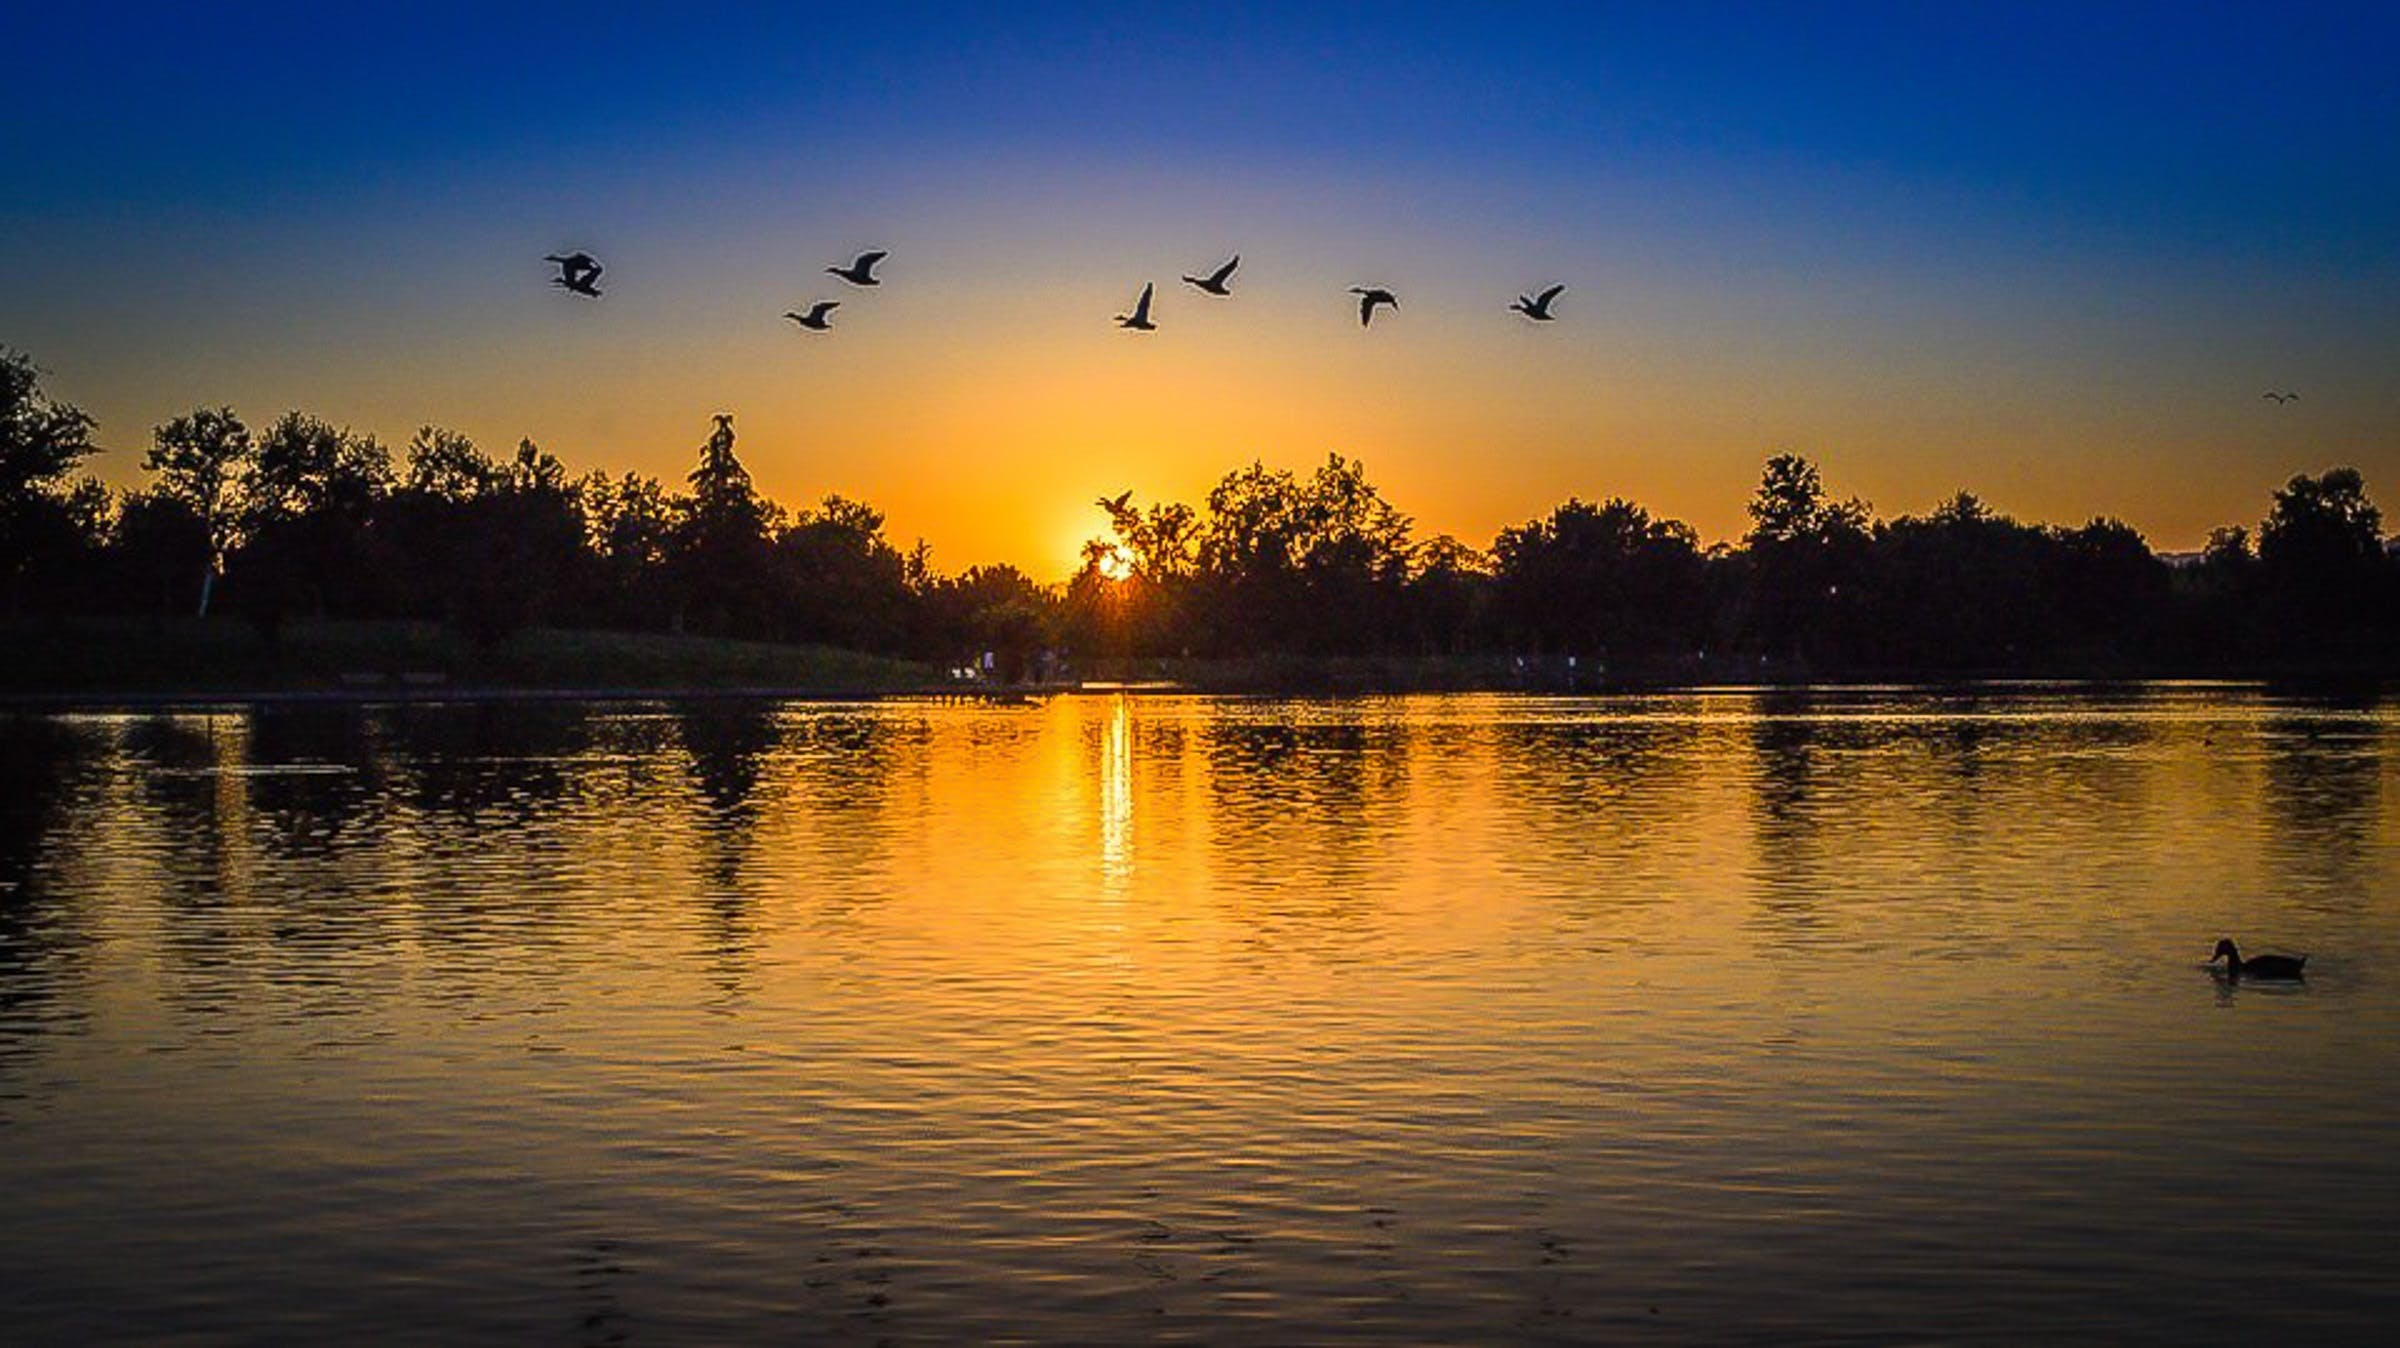 Silhouette of Forest With Birds Flying Above Body of Water during Sunset